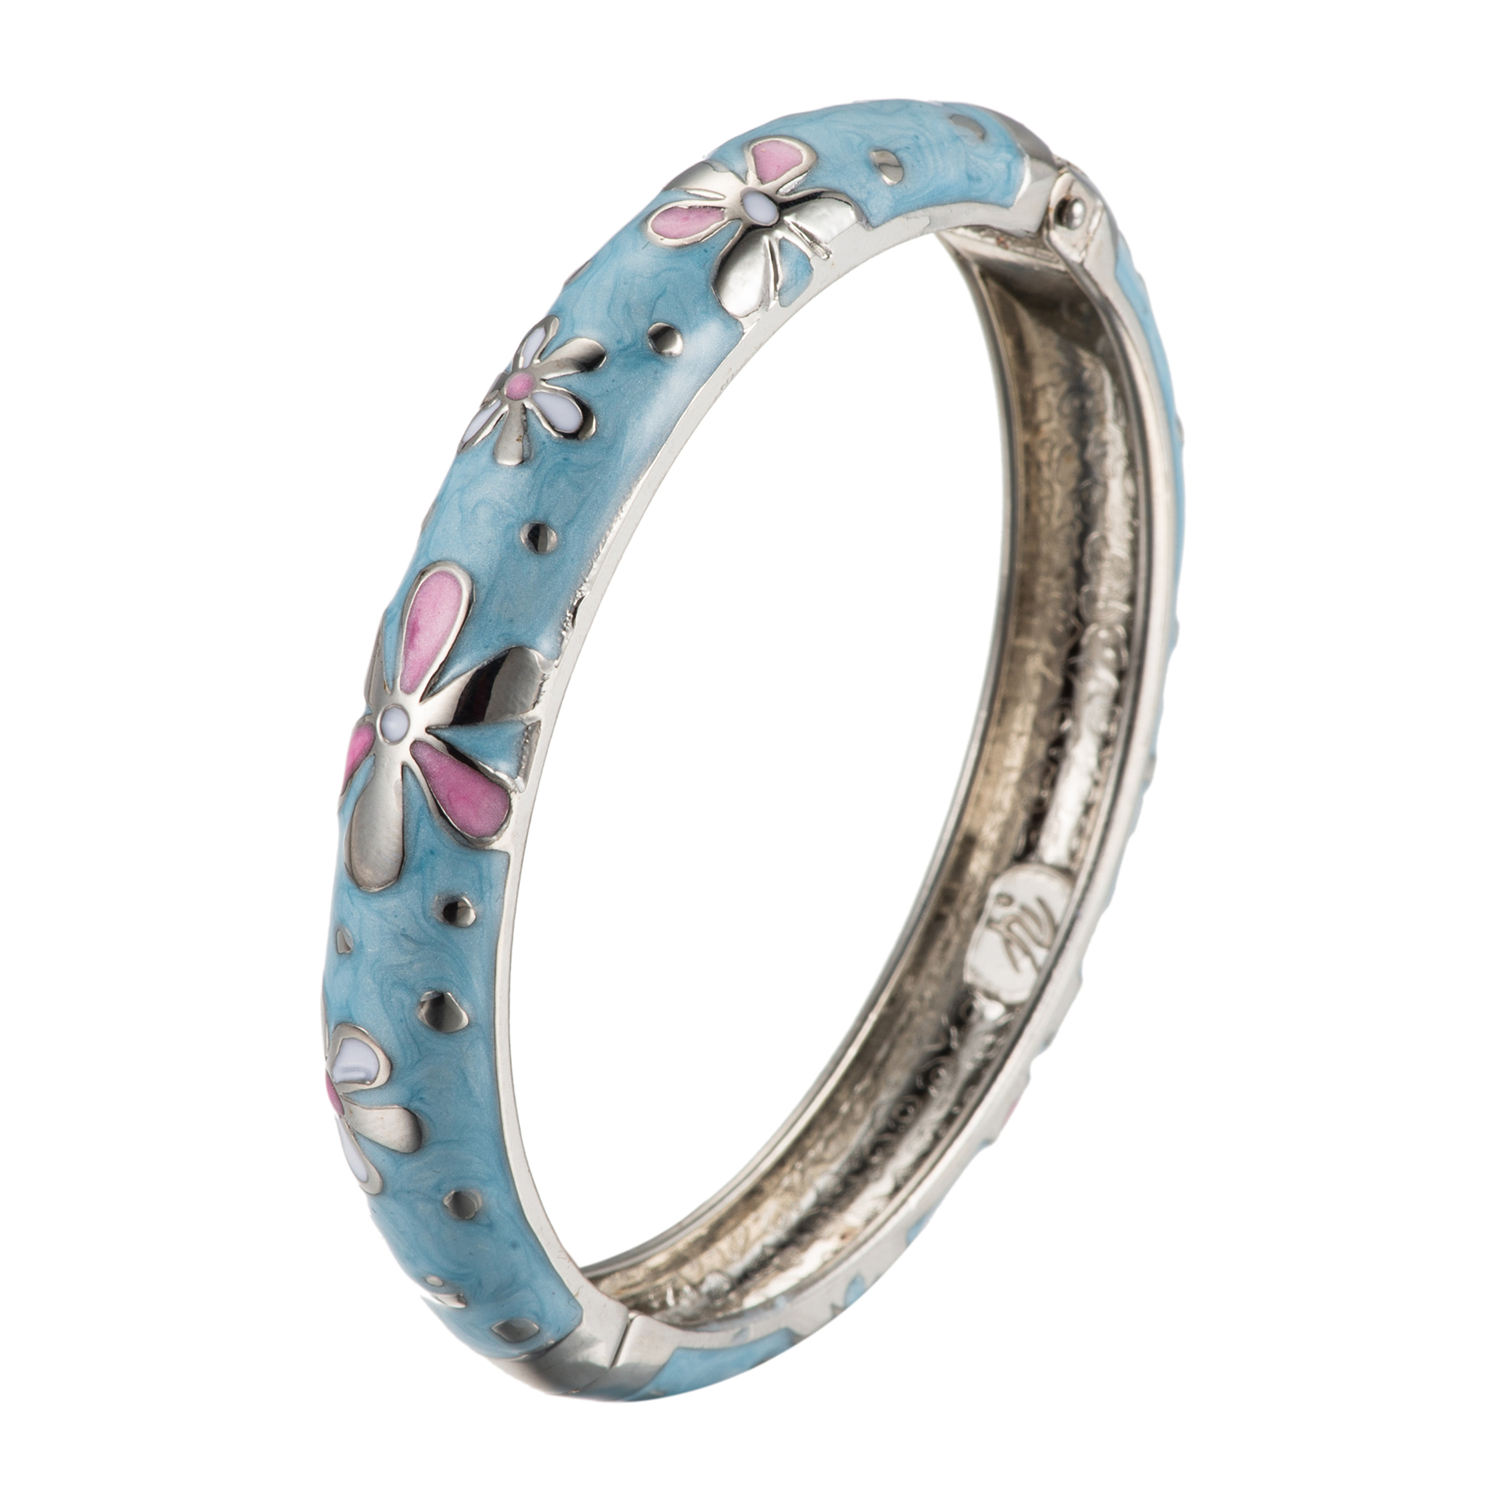 UJOY Bracelet Cloisonne Jewelry Colorful Fashion Opening Hinged Bangles Crafted Enamel Gifts for Girl Women 55A62